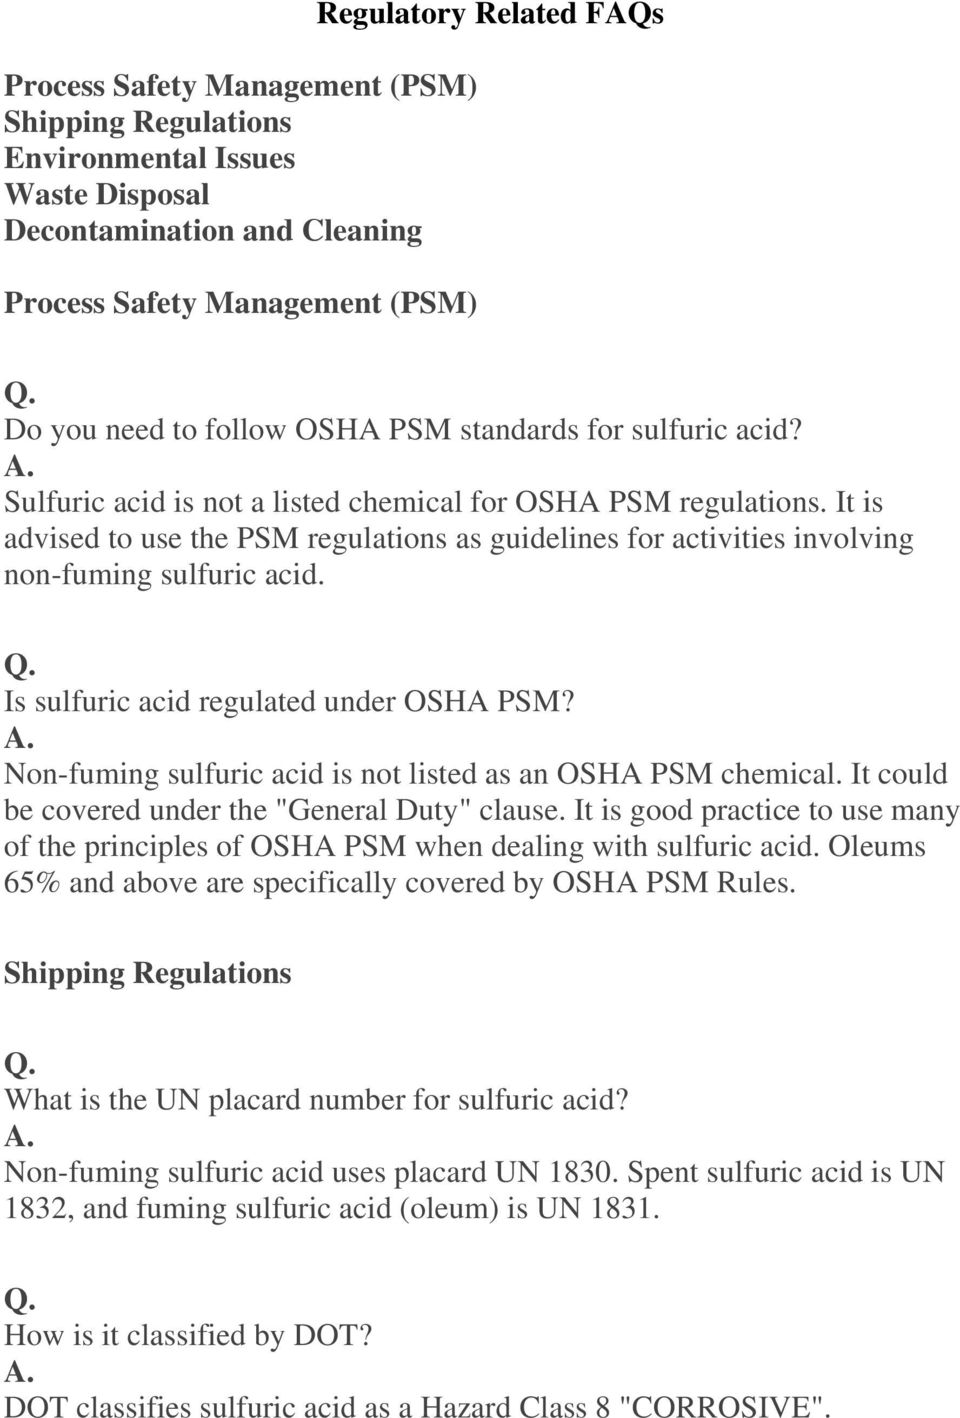 It is advised to use the PSM regulations as guidelines for activities involving non-fuming sulfuric acid. Is sulfuric acid regulated under OSHA PSM?